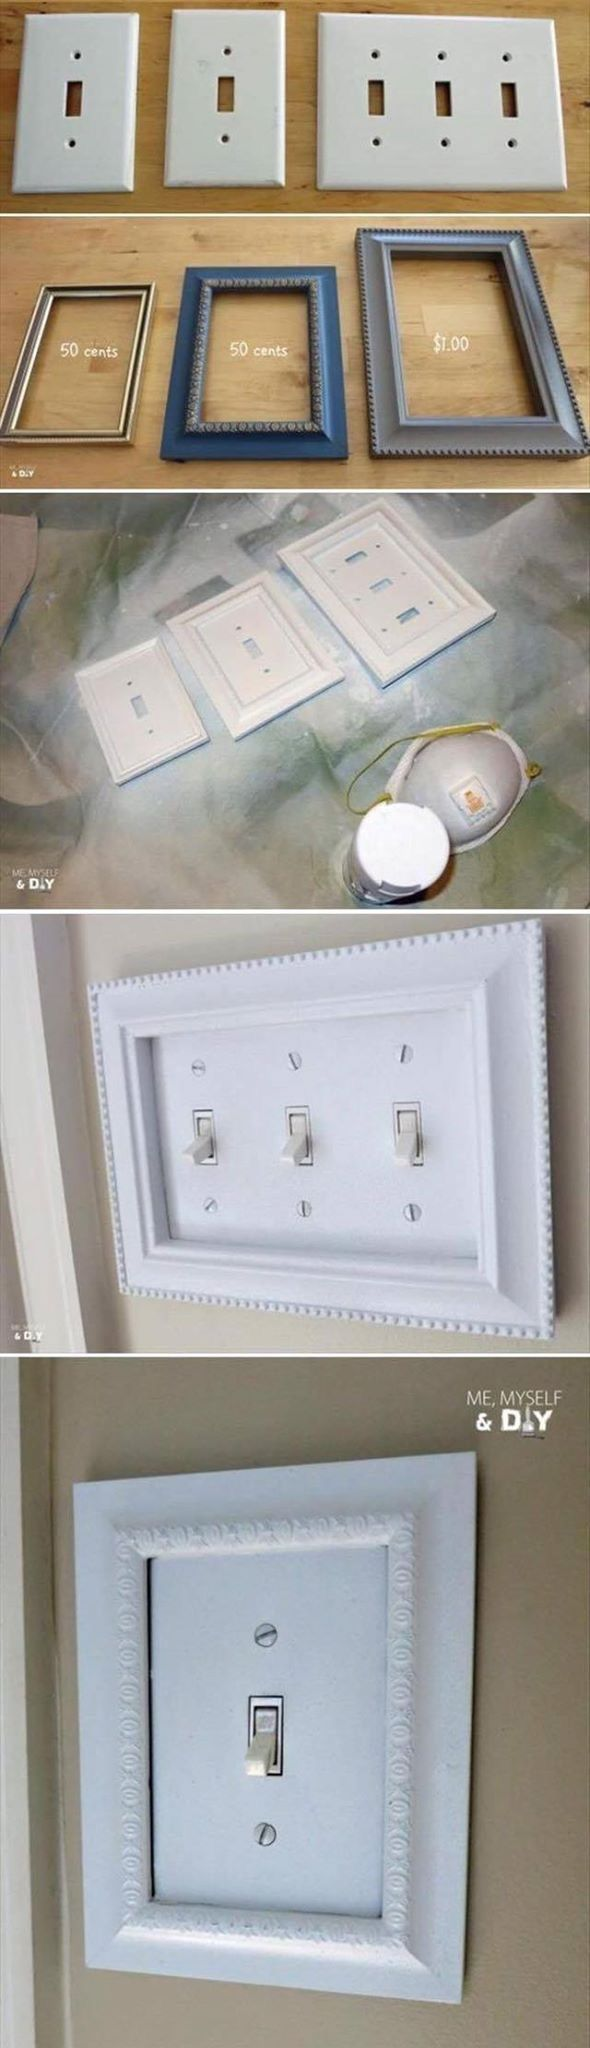 31 easy diy upgrades that will make your home look more expensive bedroom decorating ideashome